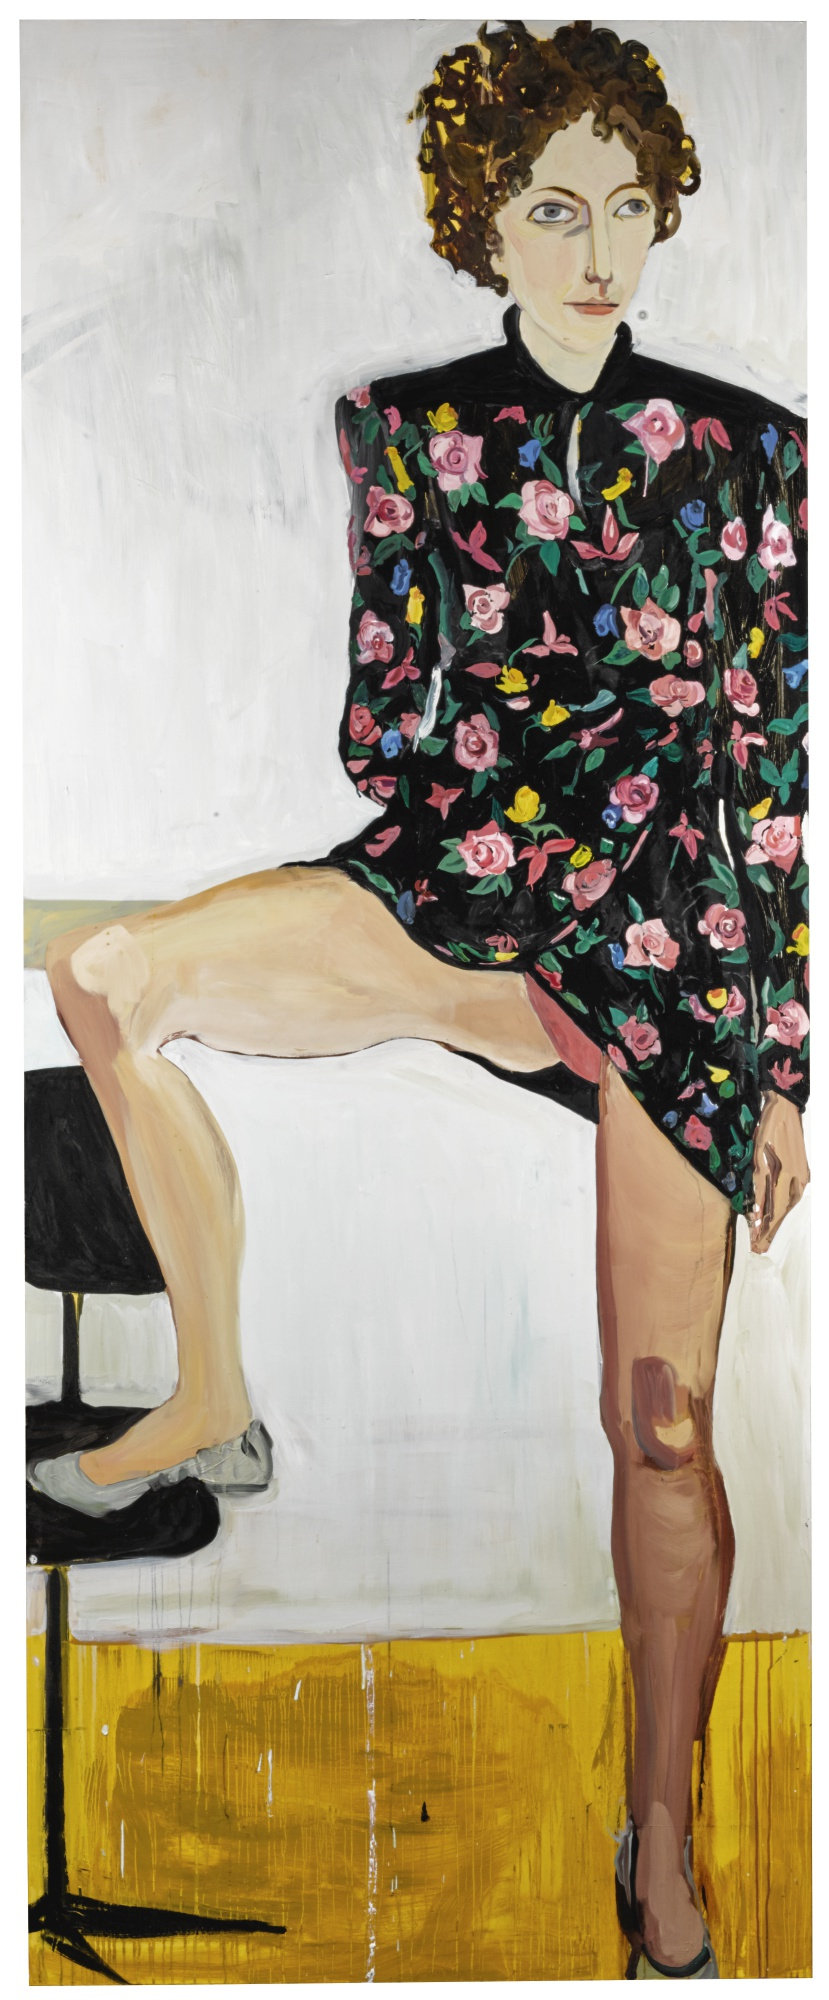 Chantal Joffe-Rose-2008